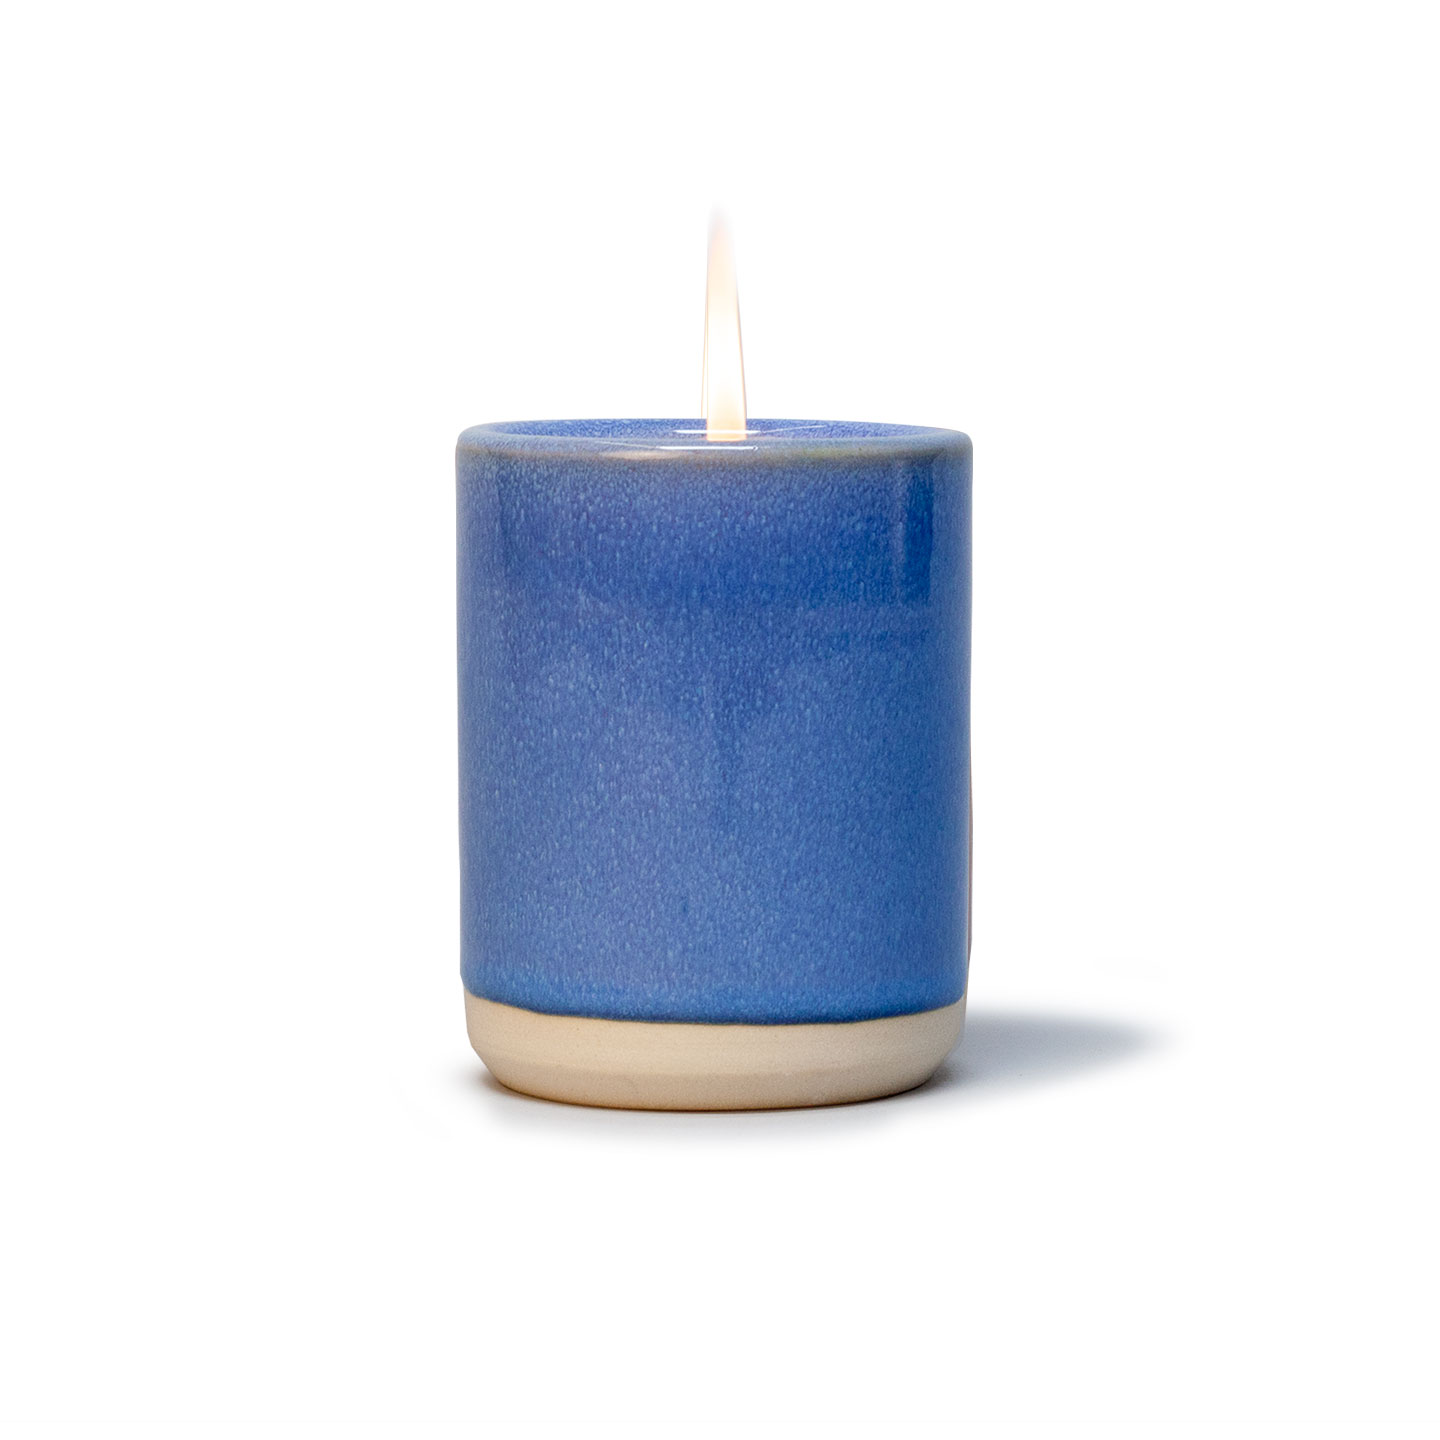 Baccala x Norden Goods Candle - Mare Blu